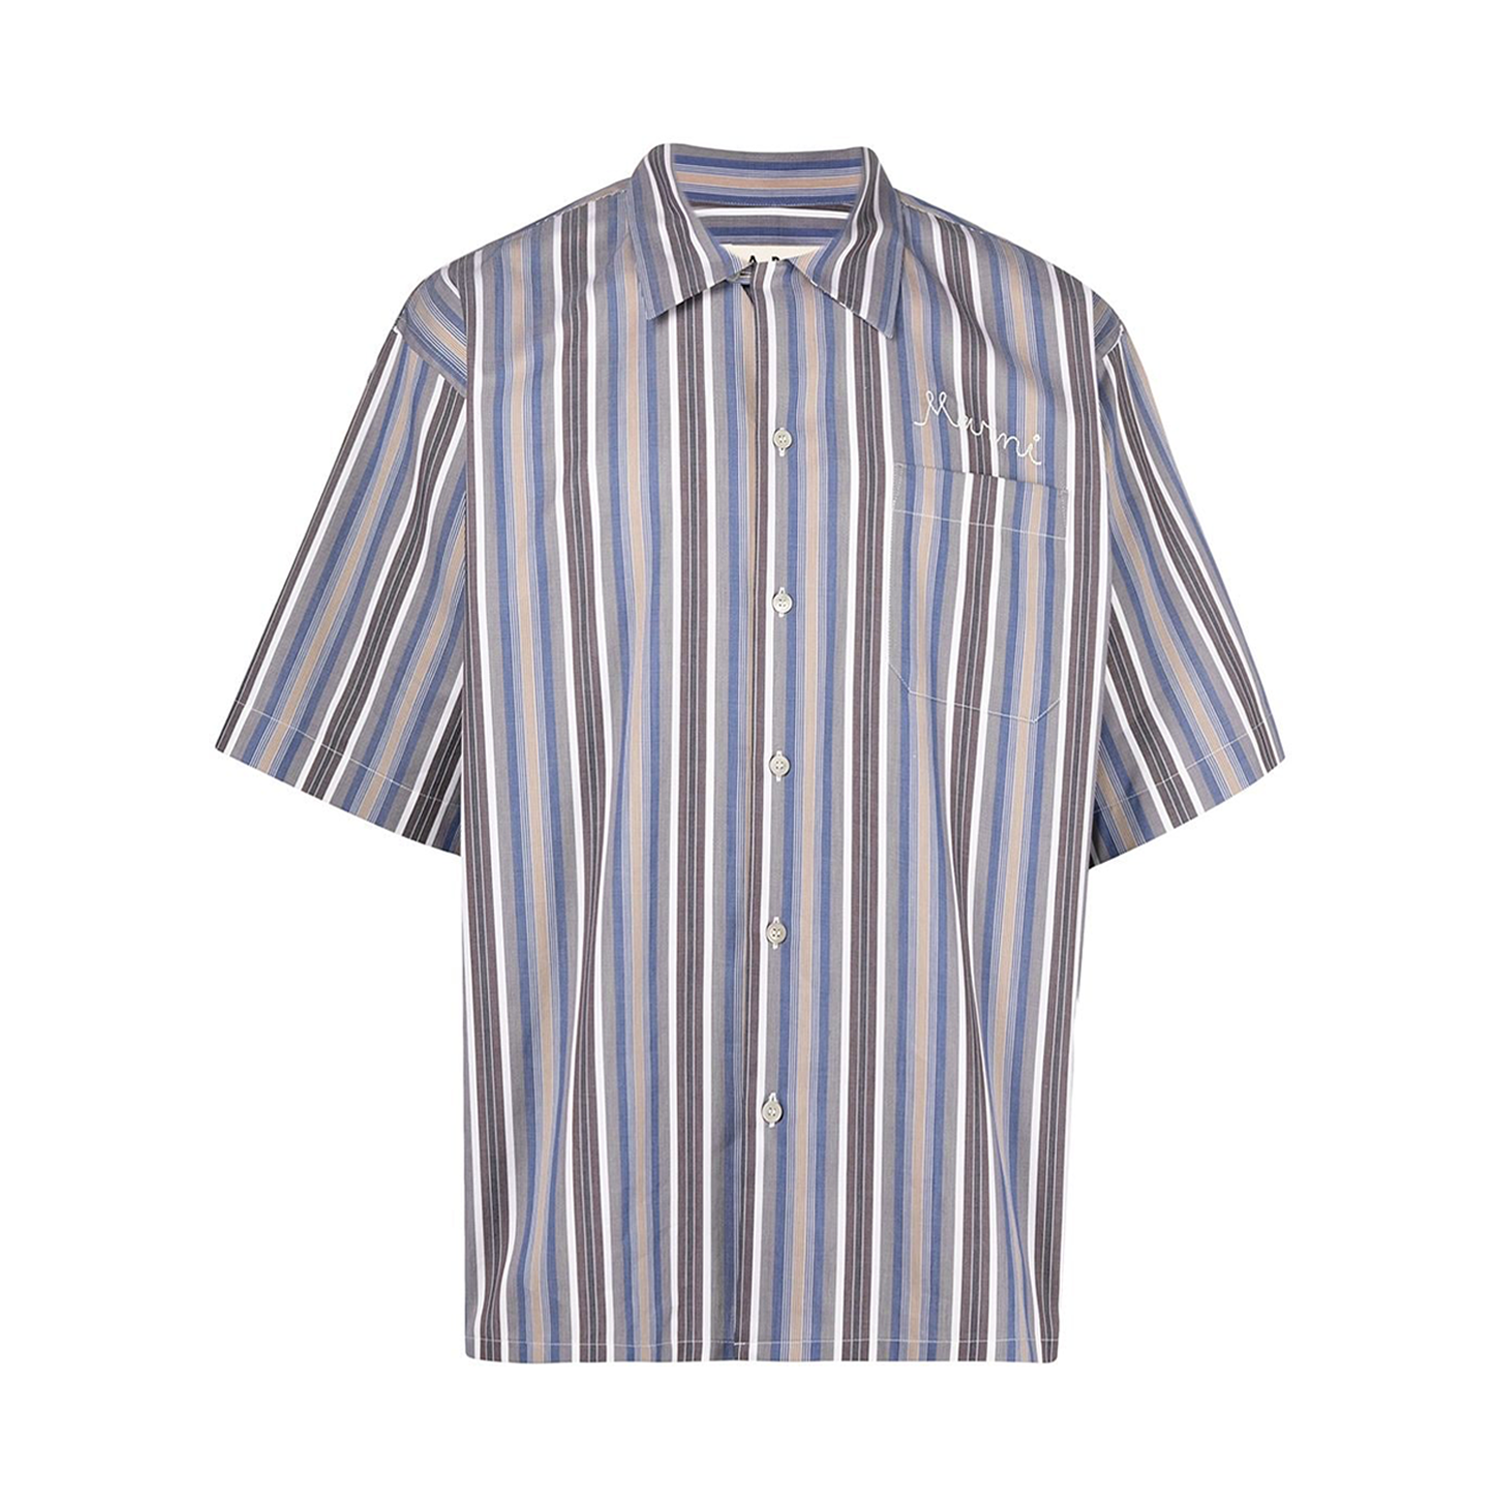 Logo-Embroidered Striped Shirt